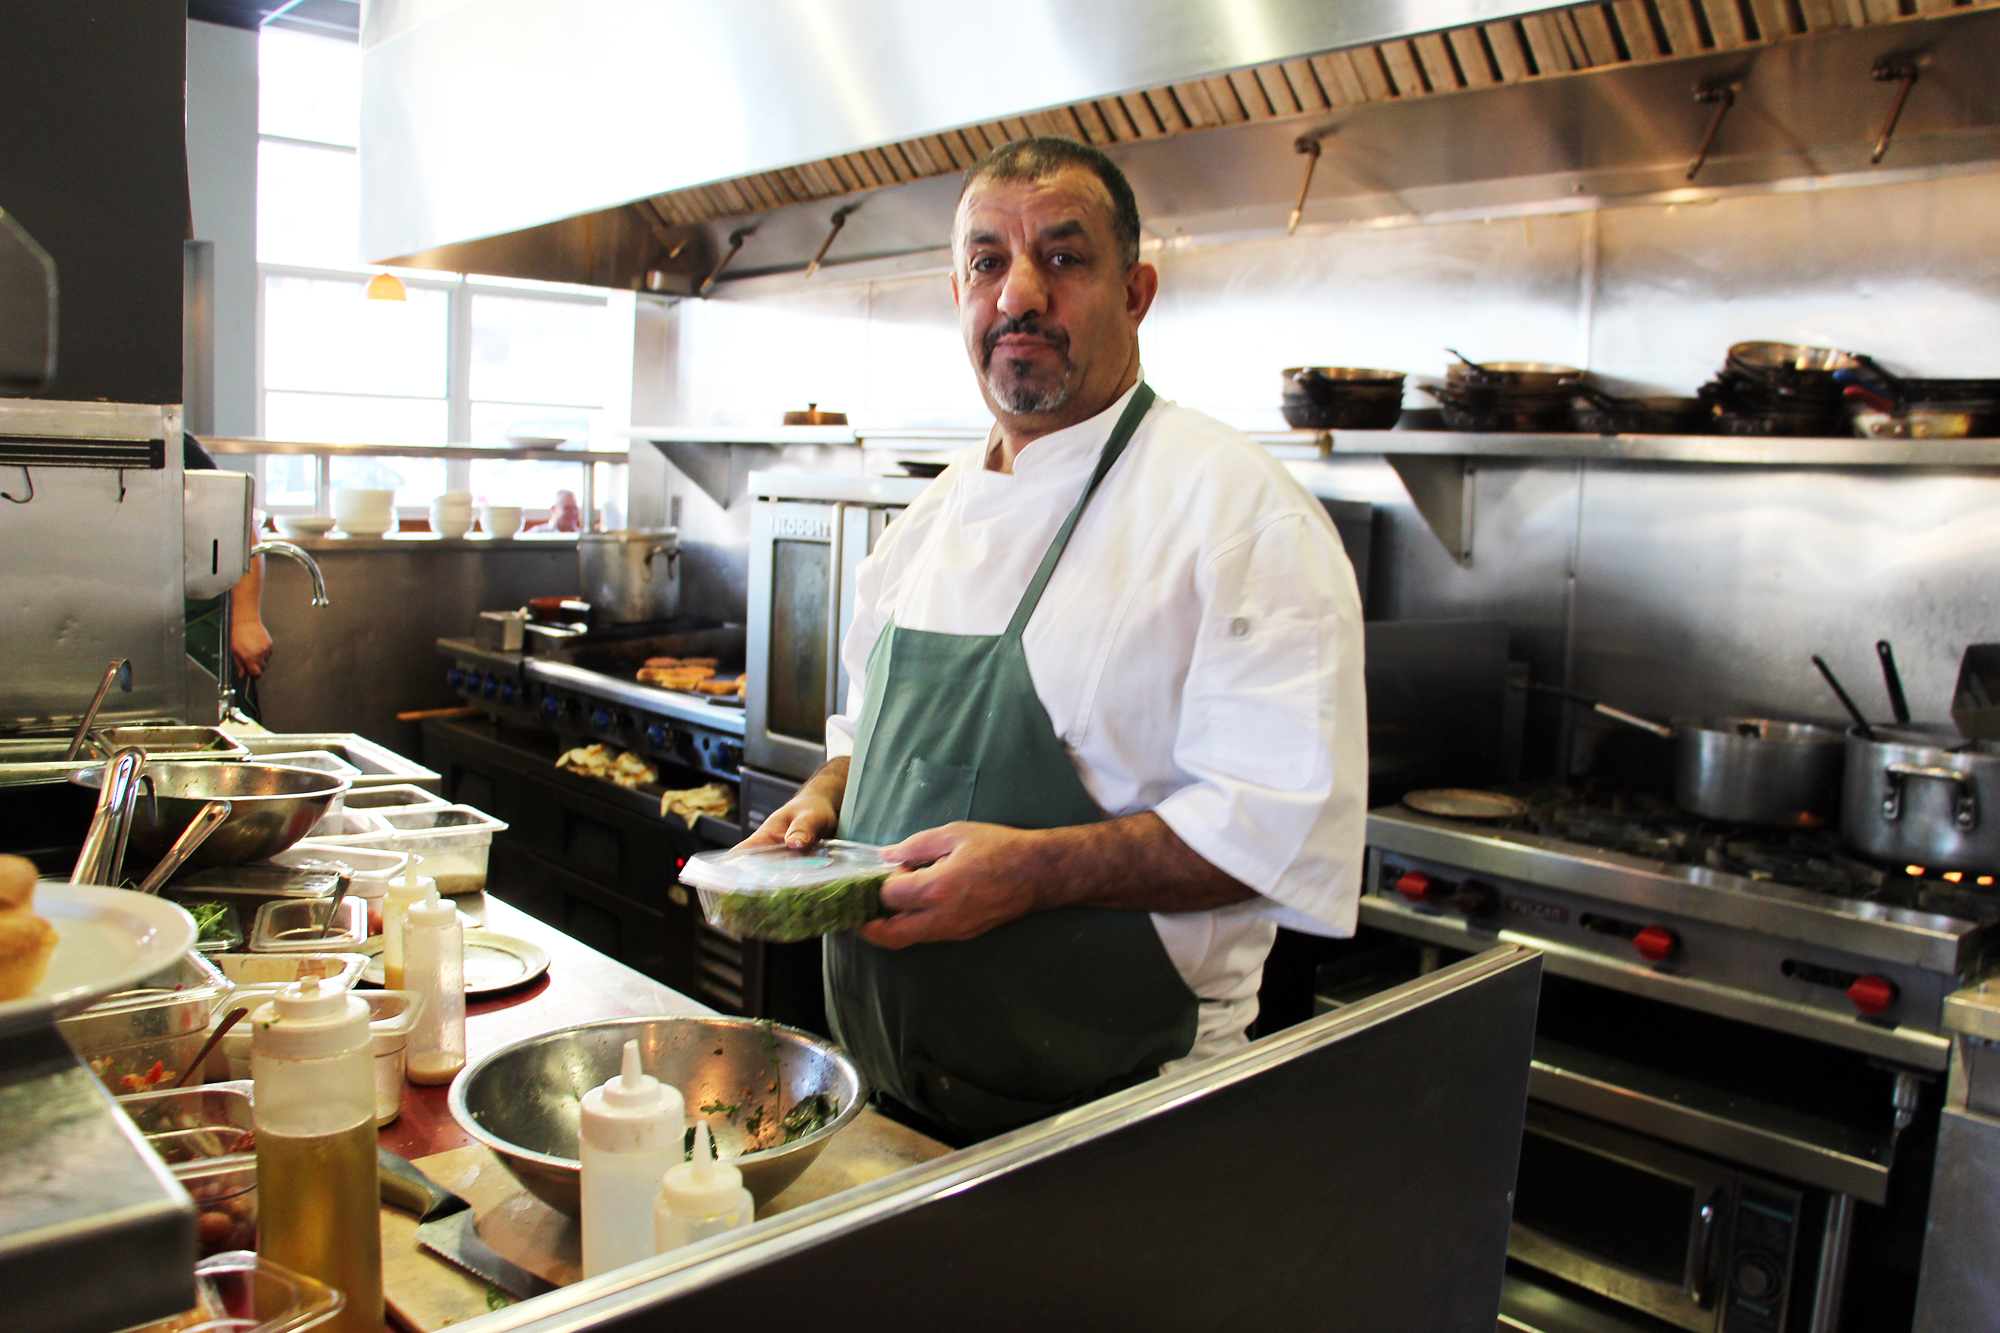 Chef/Owner Mohamed Aboghanem in Saha open kitchen.